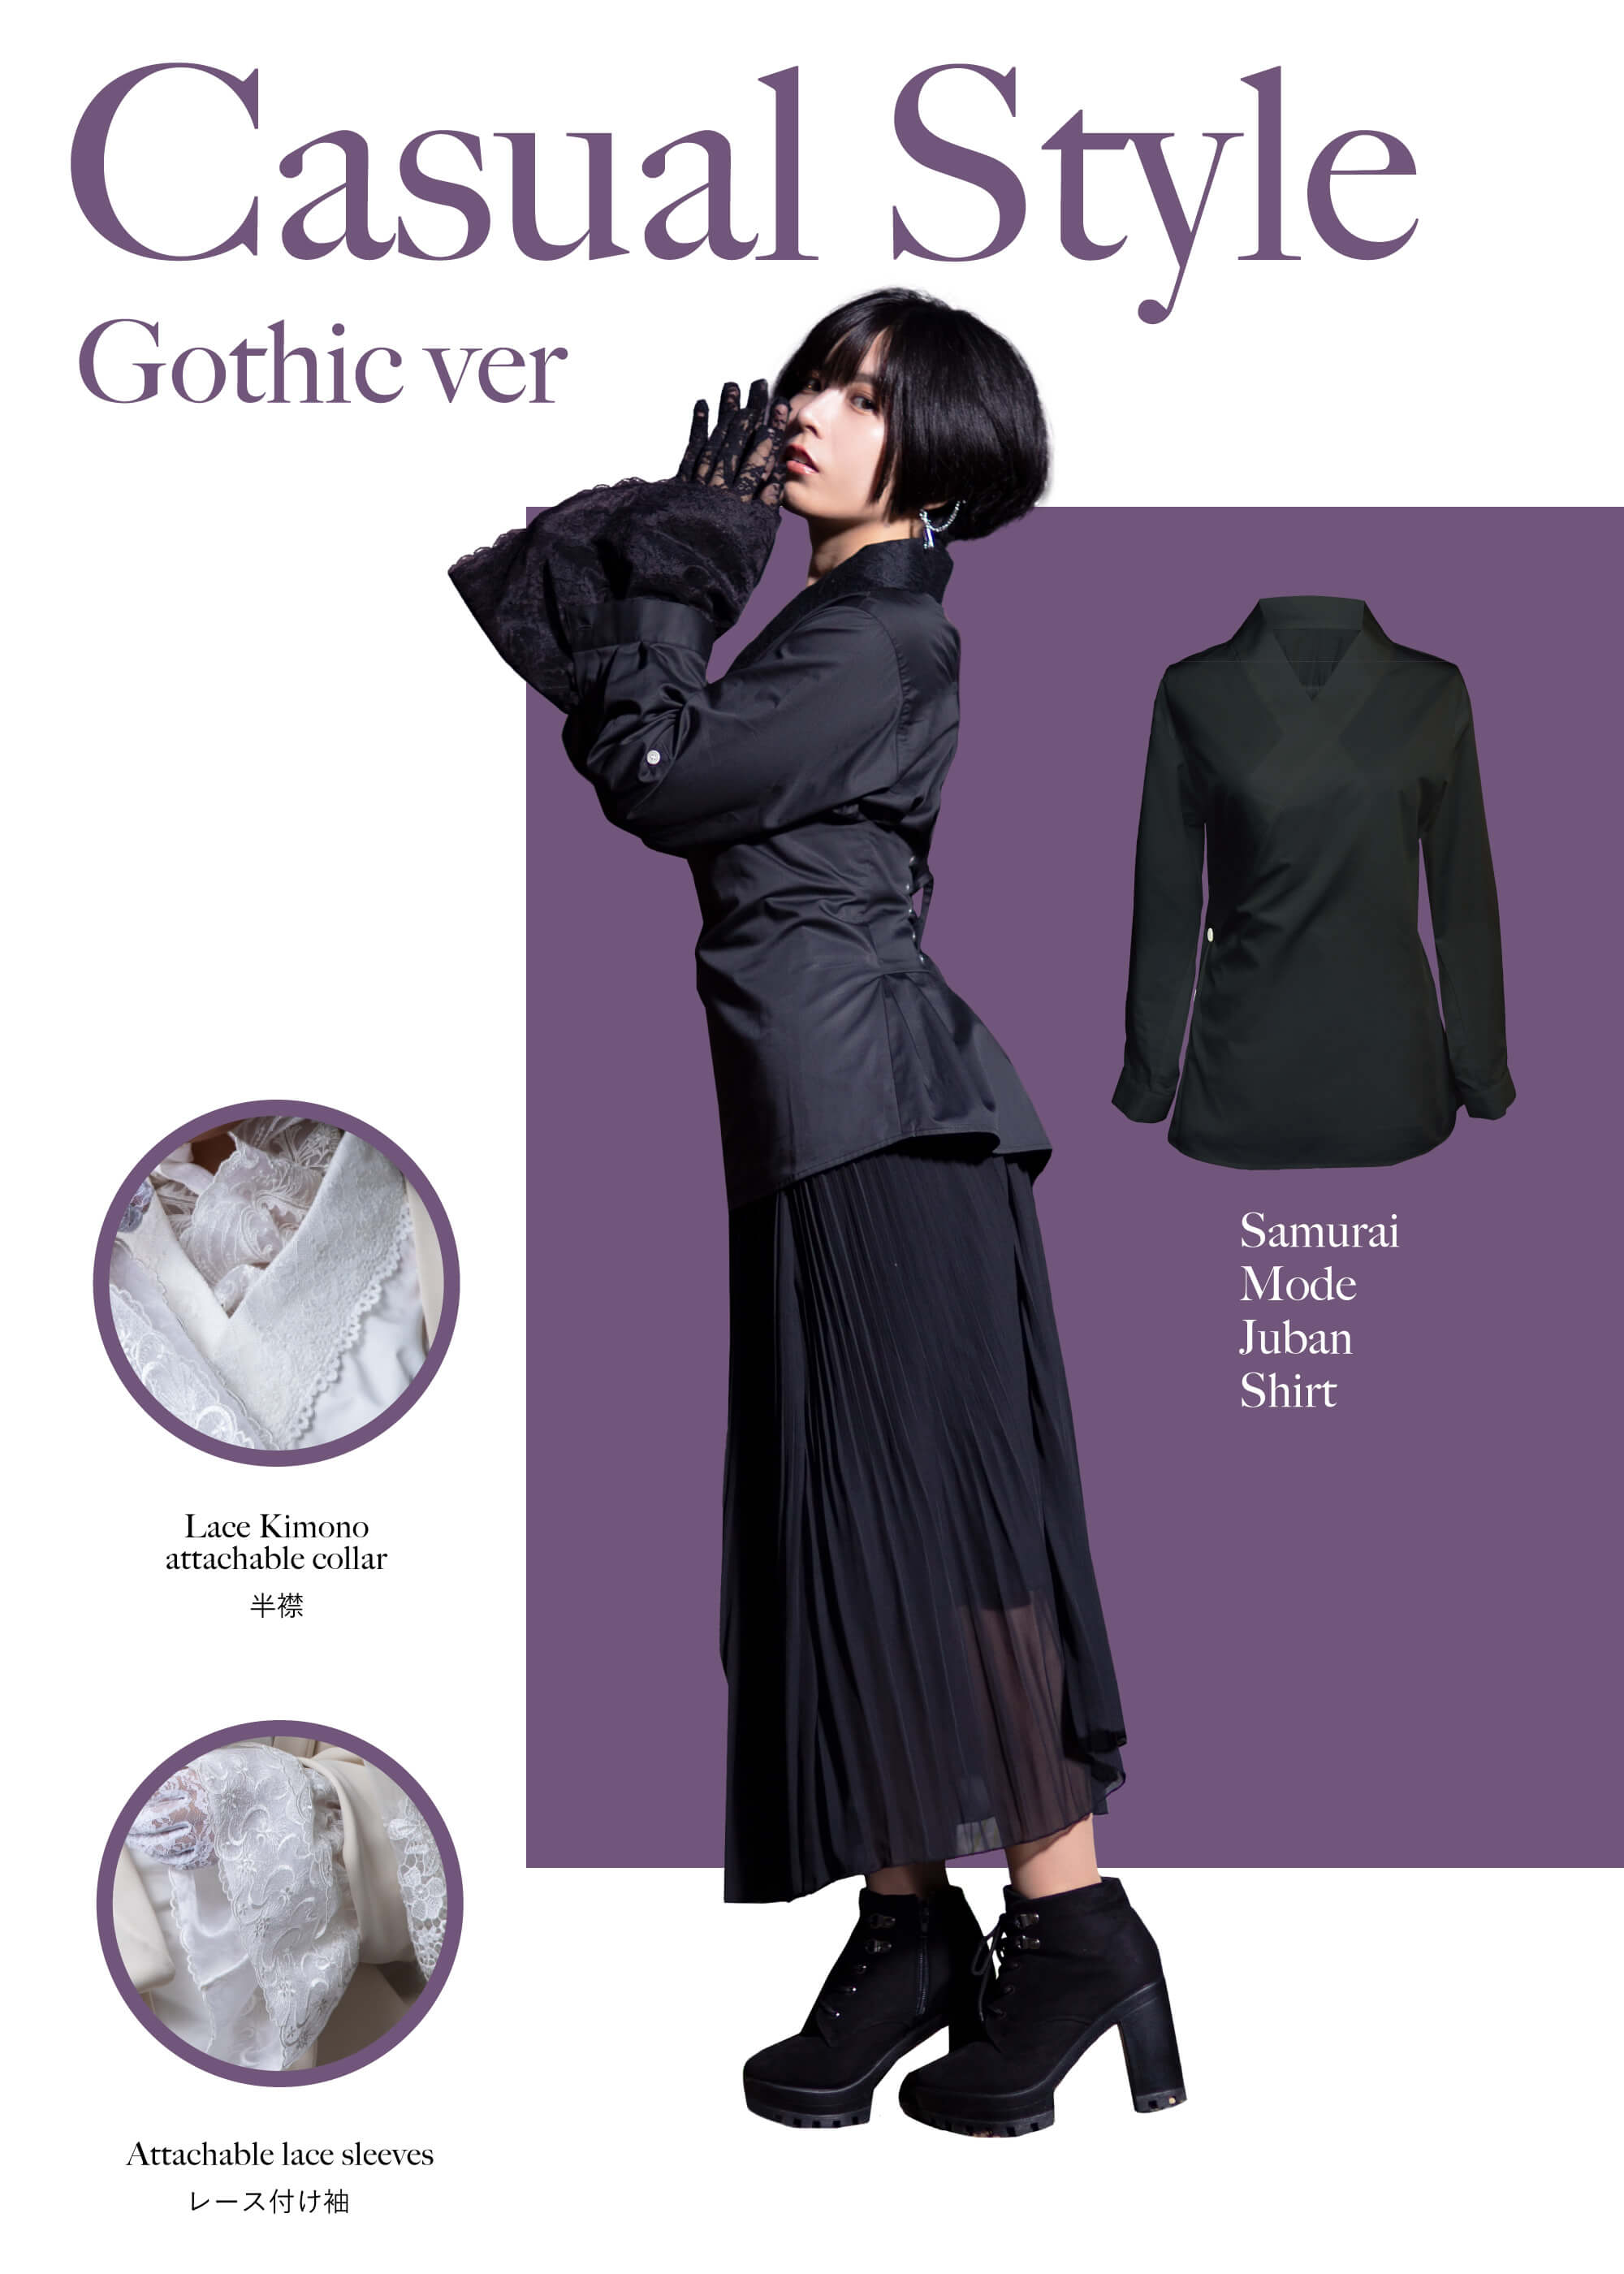 Casual style Gothic version